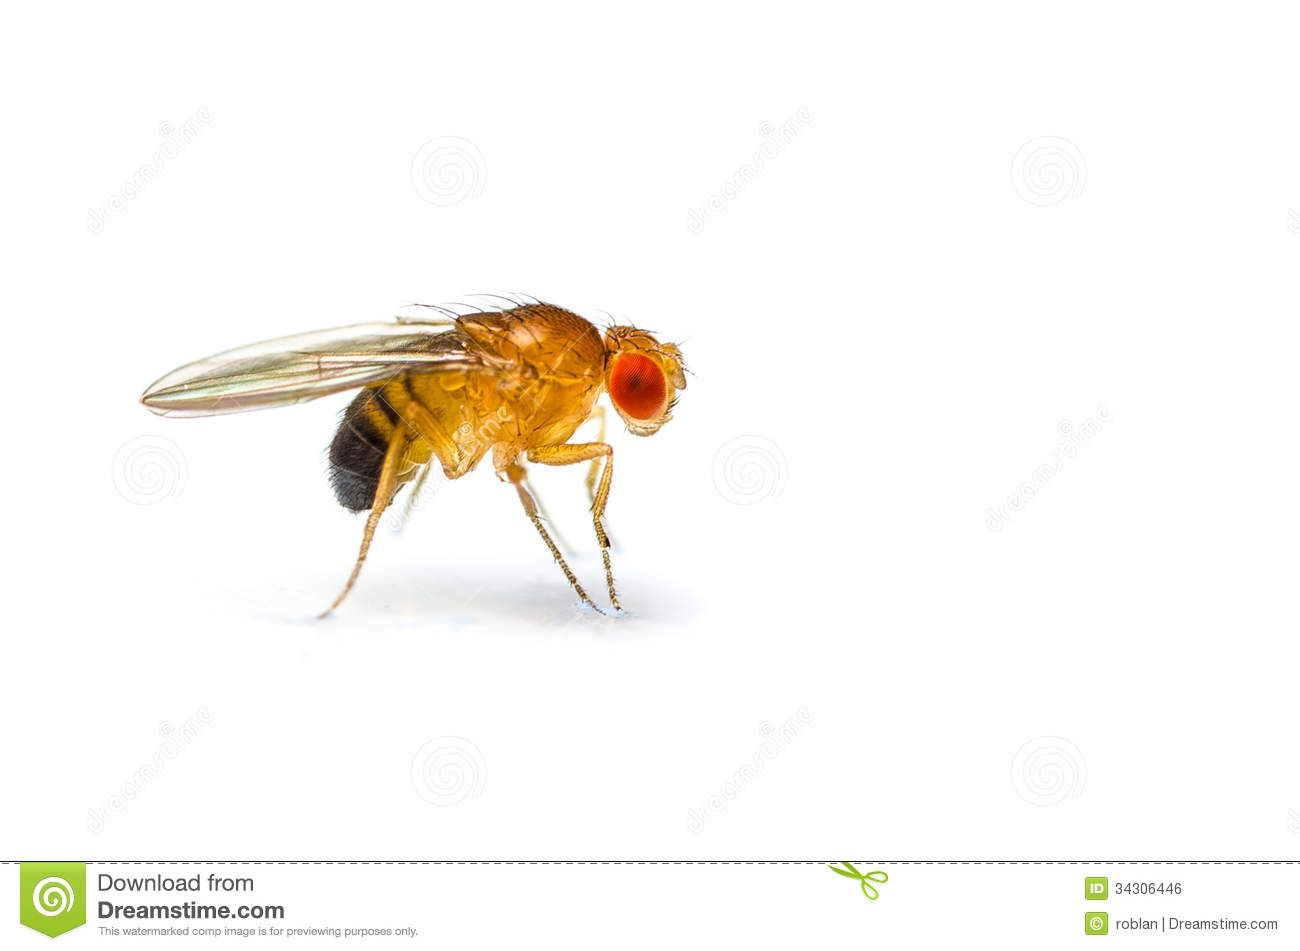 Why Are There Fruit Flies In My Bathroom